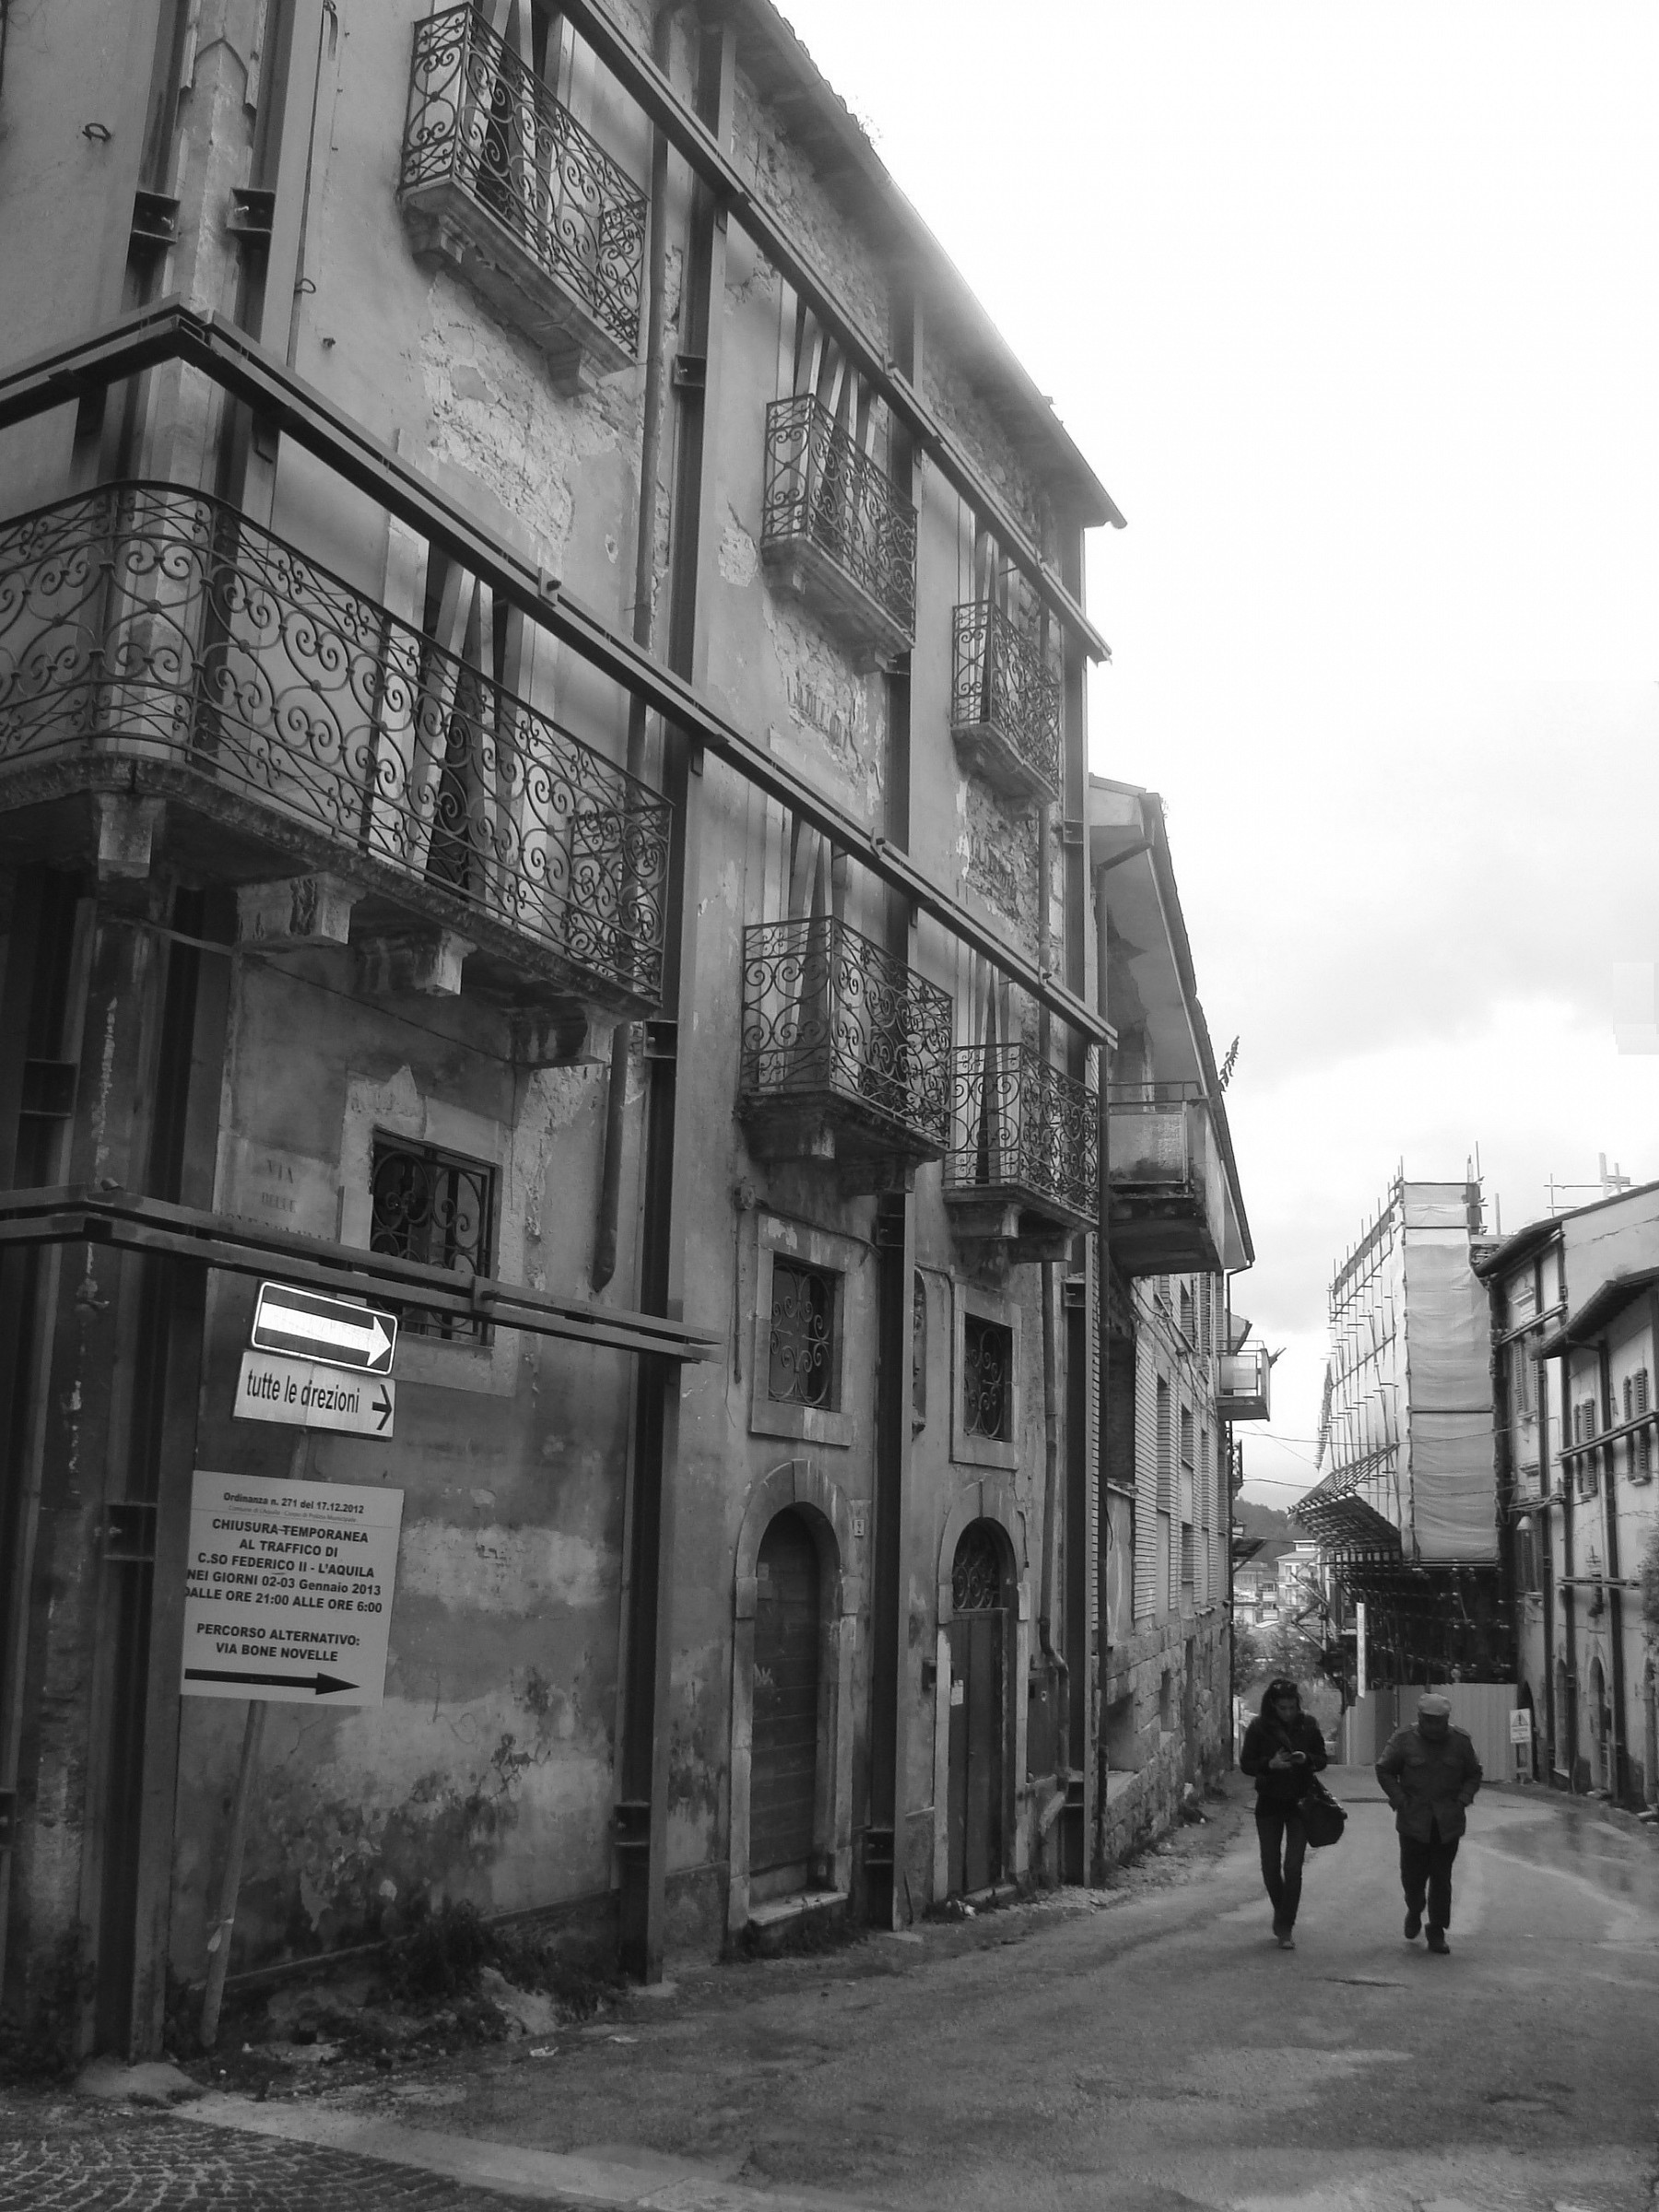 In the deserted streets ......